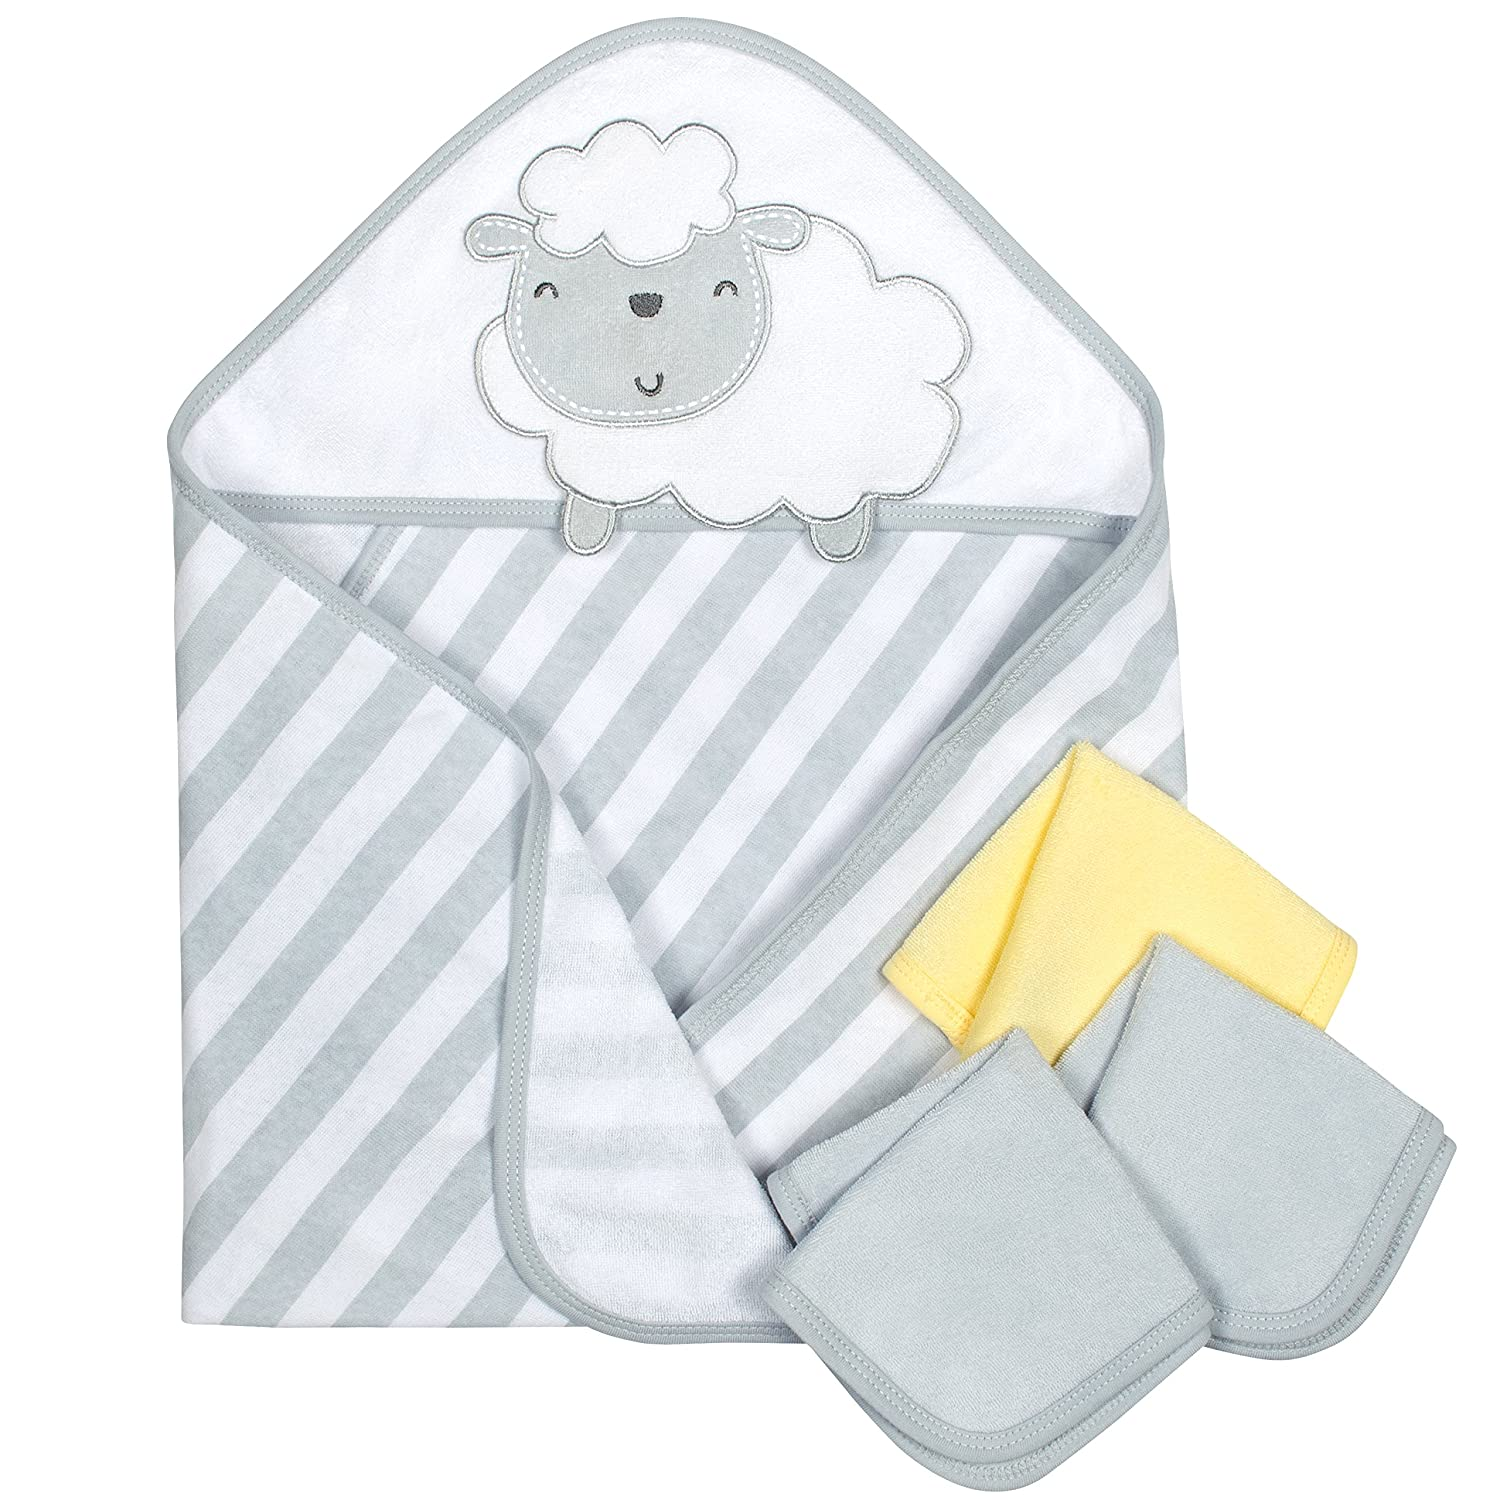 Gerber 4-Piece Hooded26 x 30 Towel and 9x 9 Washcloth Set, Whale Gerber Childrenswear 13742416AB18OSZ